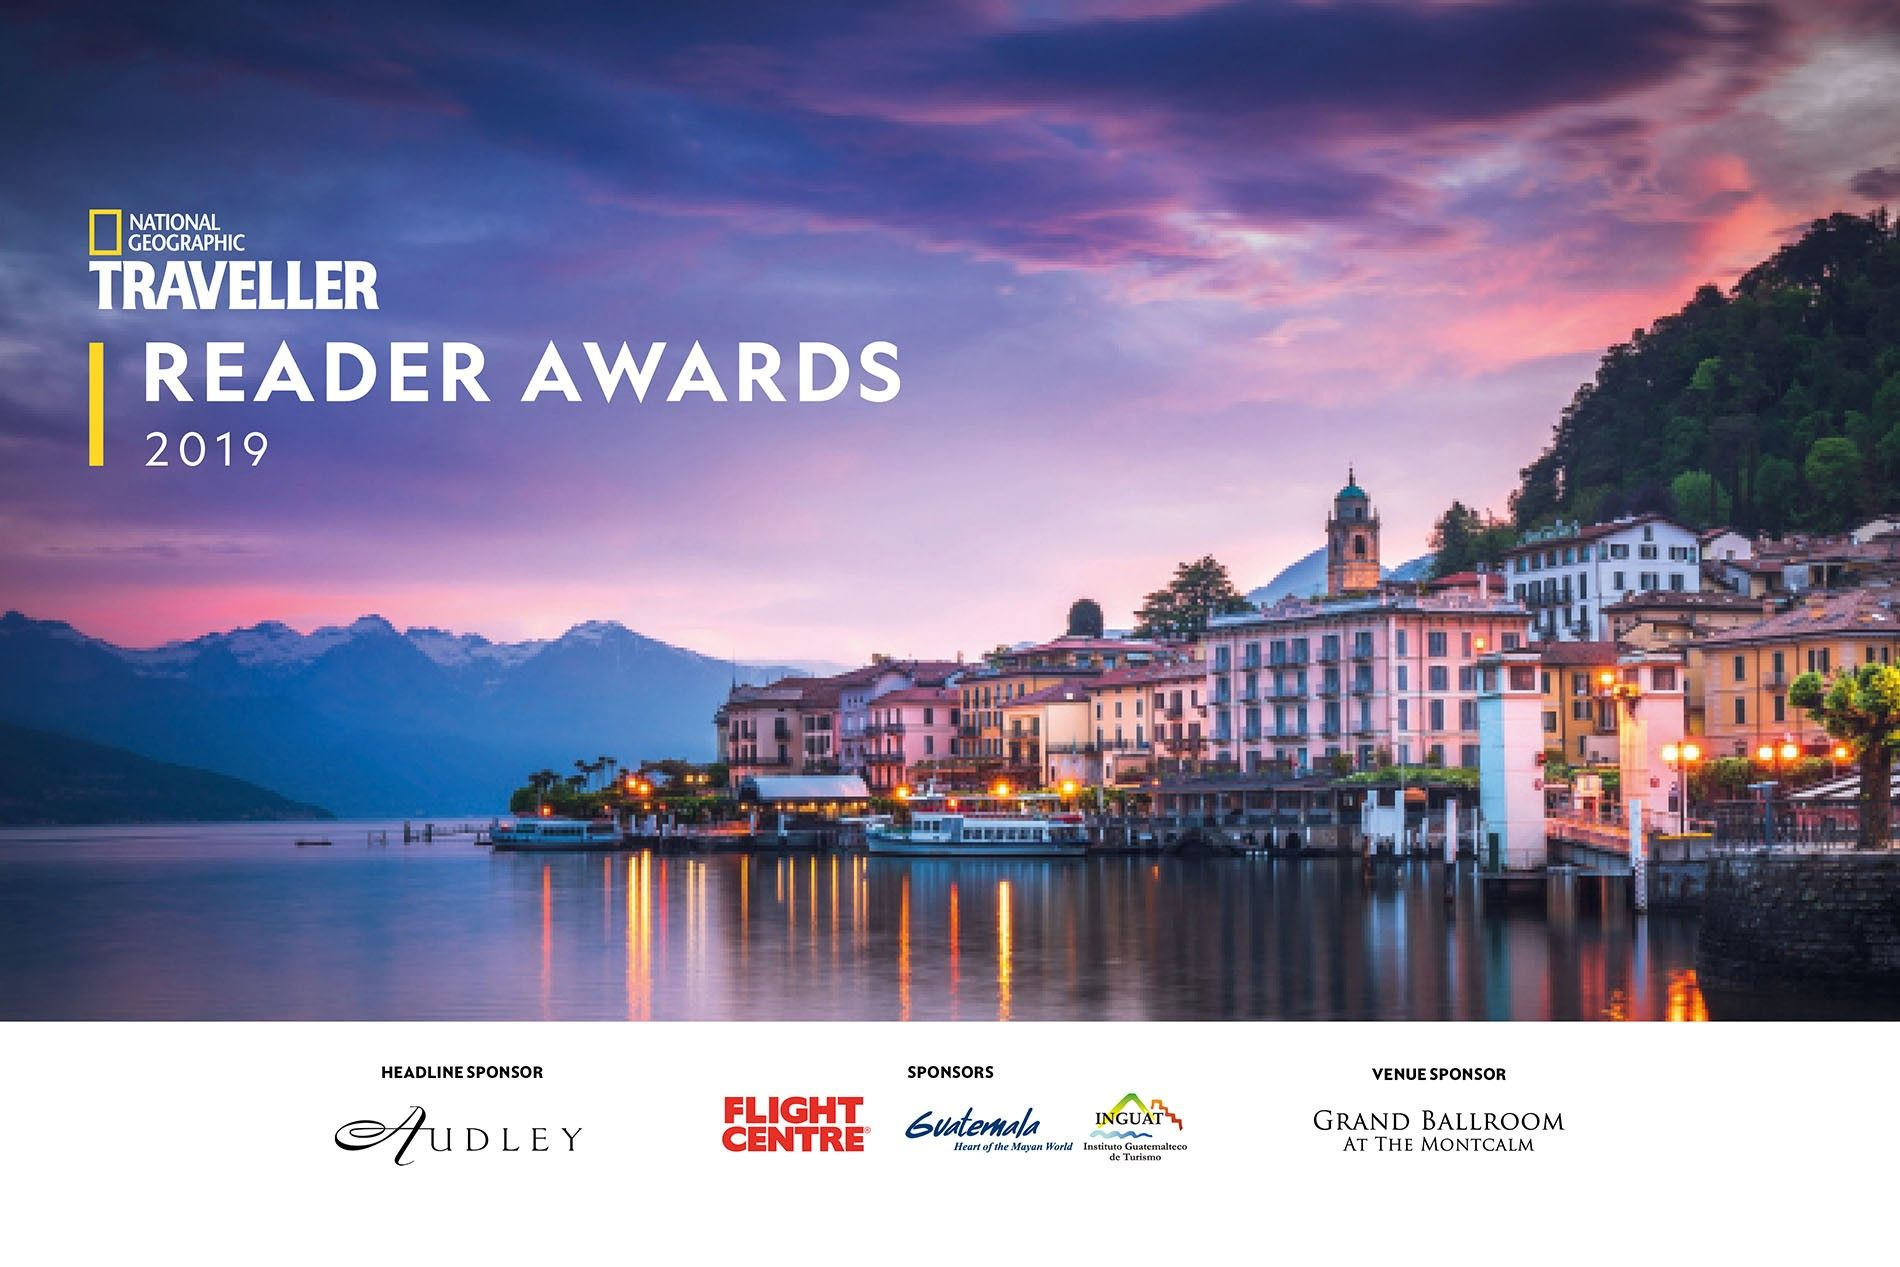 National Geographic Traveller Reader Awards 2019.